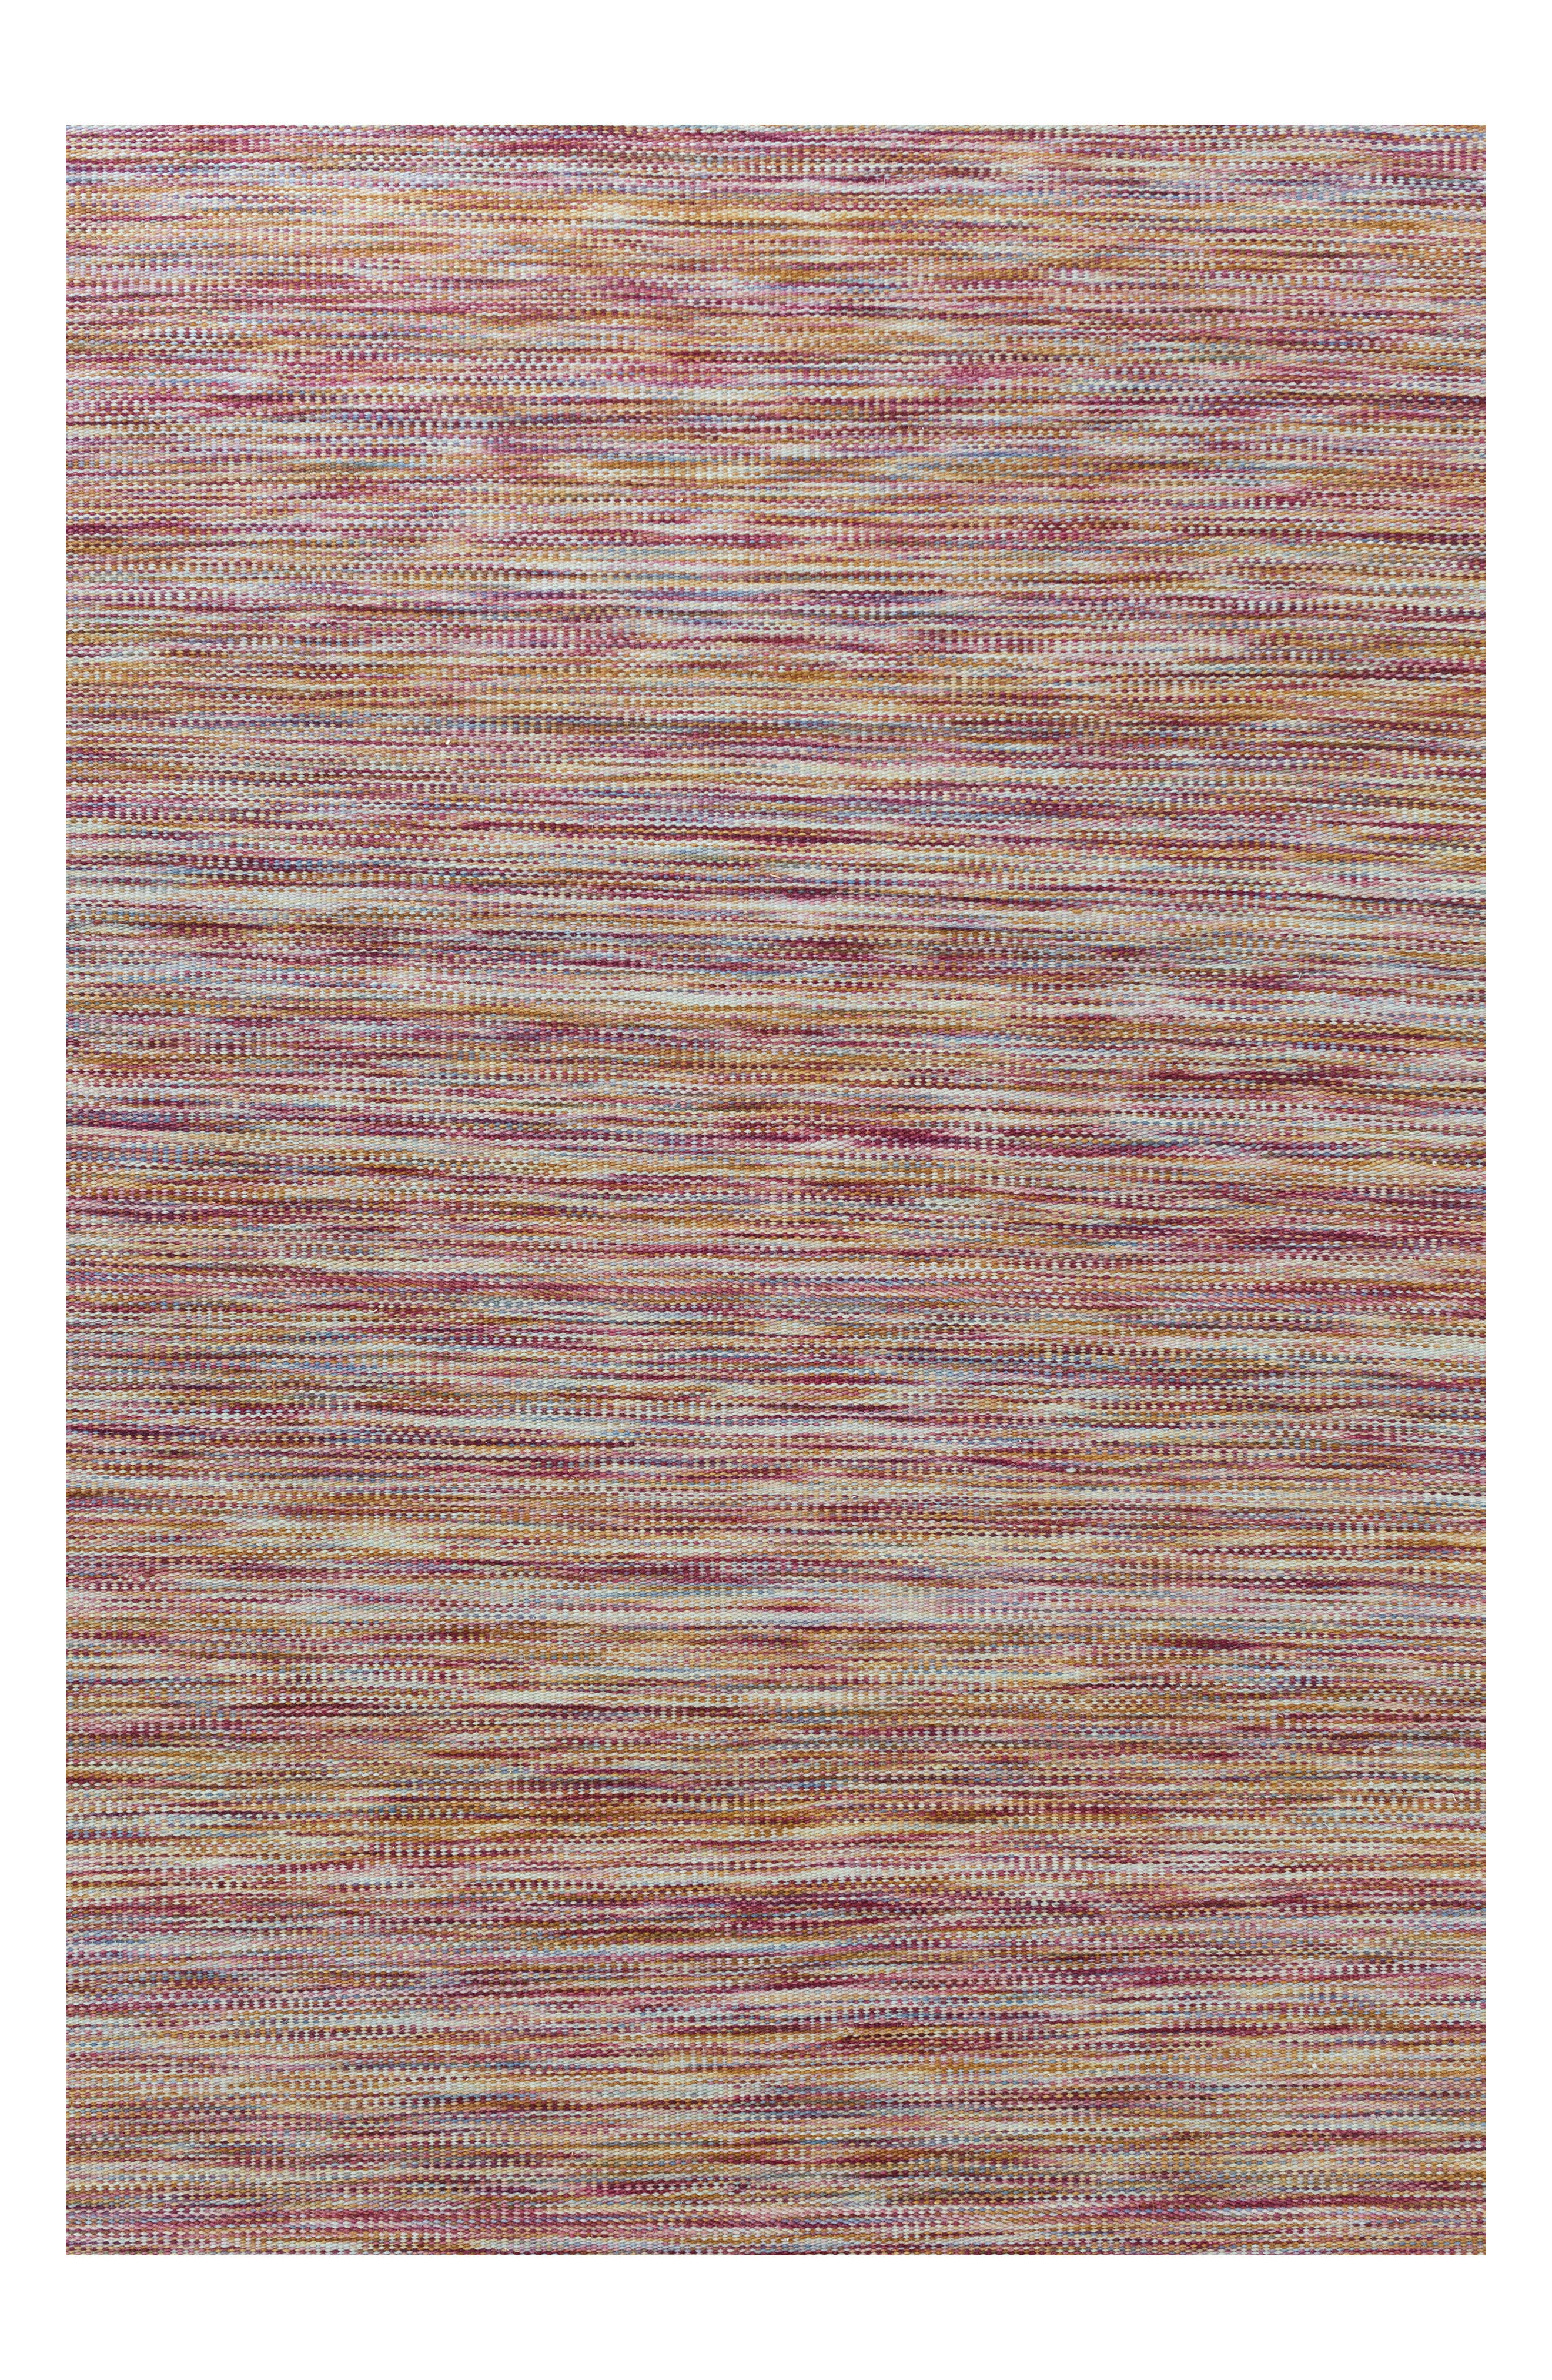 Alternate Image 1 Selected - Dash & Albert Bloomsbury Handwoven Wool Blend Rug